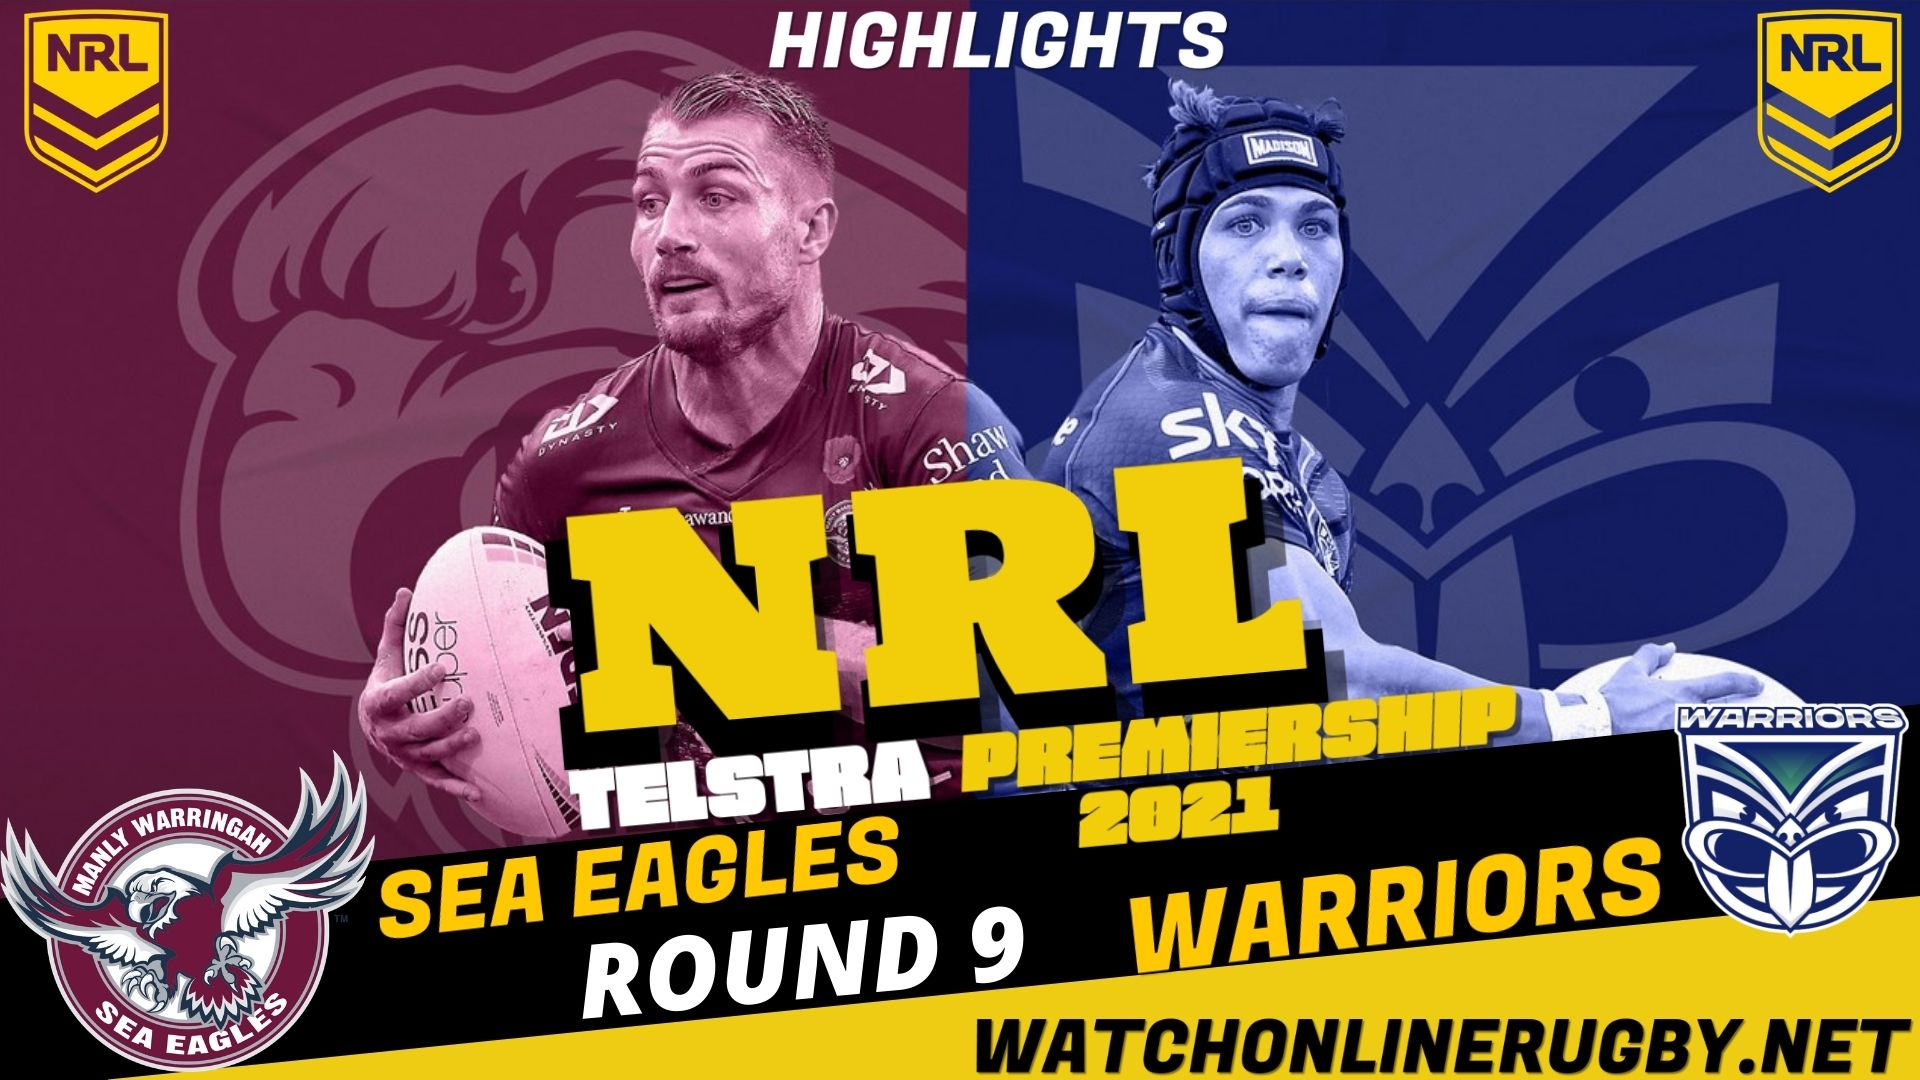 Sea Eagles Vs Warriors Highlights RD 9 NRL Rugby